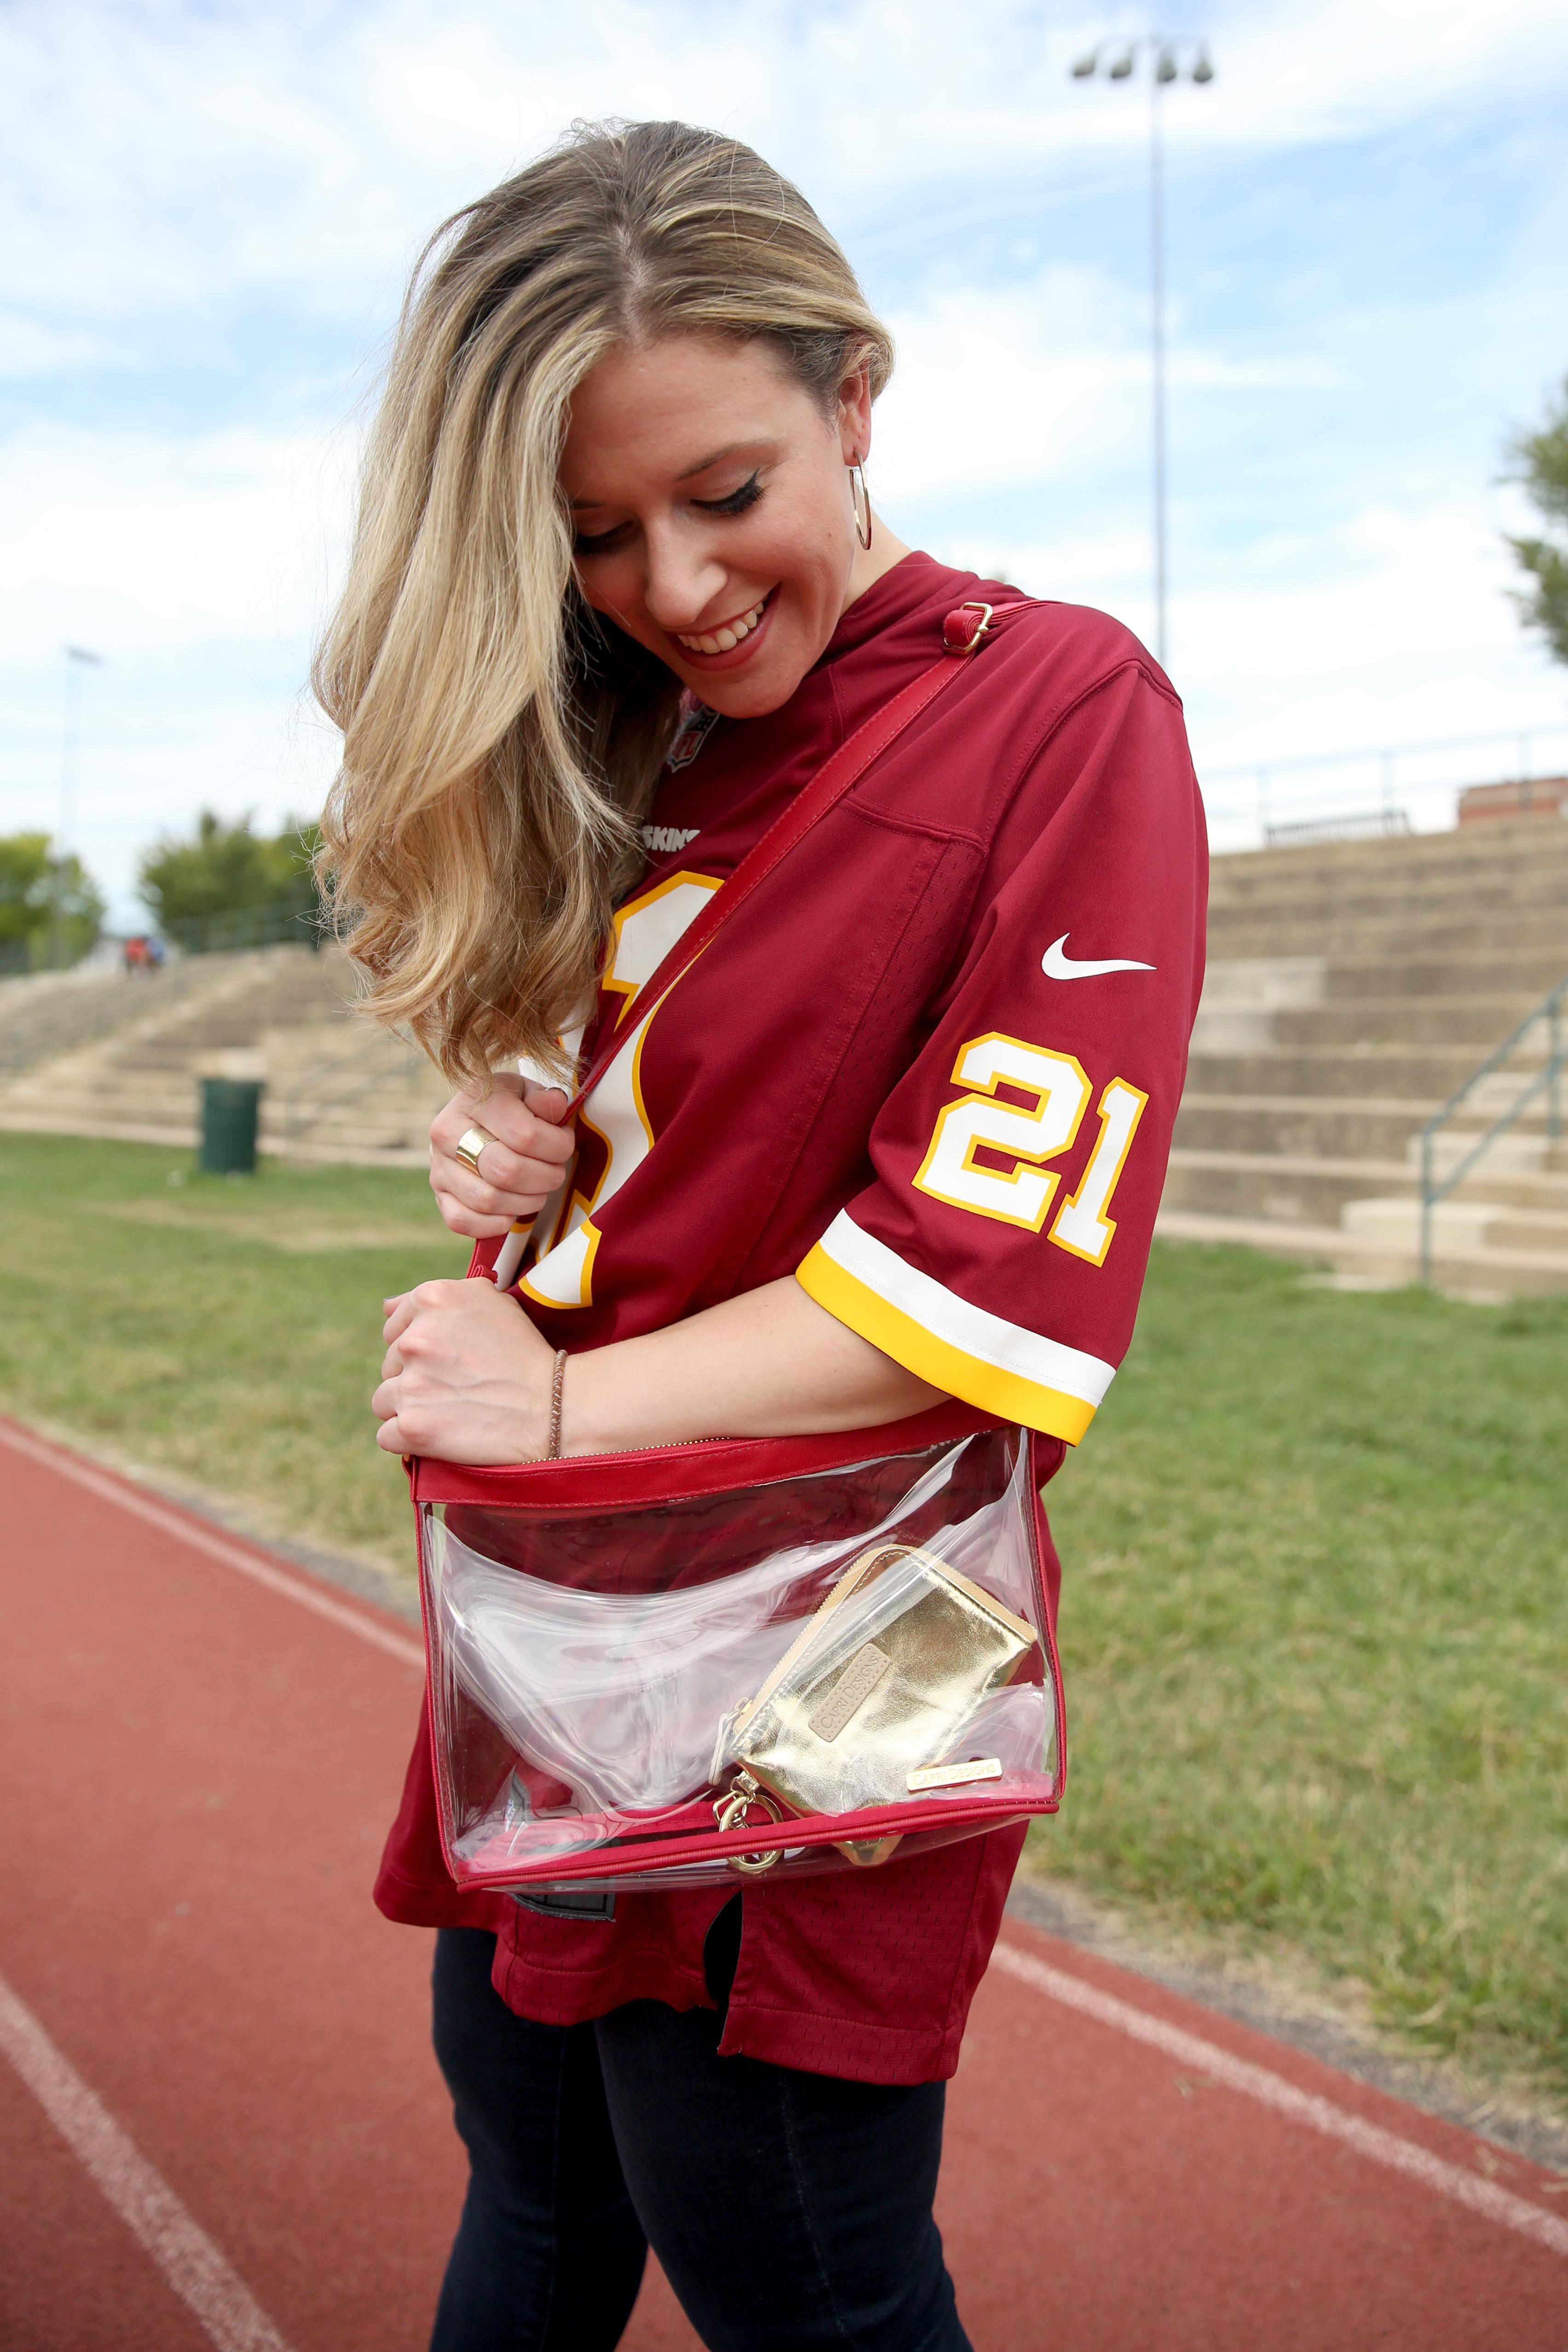 If you are going to the game it's important to remember they only allow tiny purses. Anything bigger than a wallet basically needs to be clear! I recommend one of these clear, hip, plastic, cross body bags.  This one is by a company called Capri Designs. I like it because it's a burgundy-trimmed bag with a little gold card holder. I couldn't be more redskins ready!(Image: Amanda Andrade-Rhoades/ DC Refined)